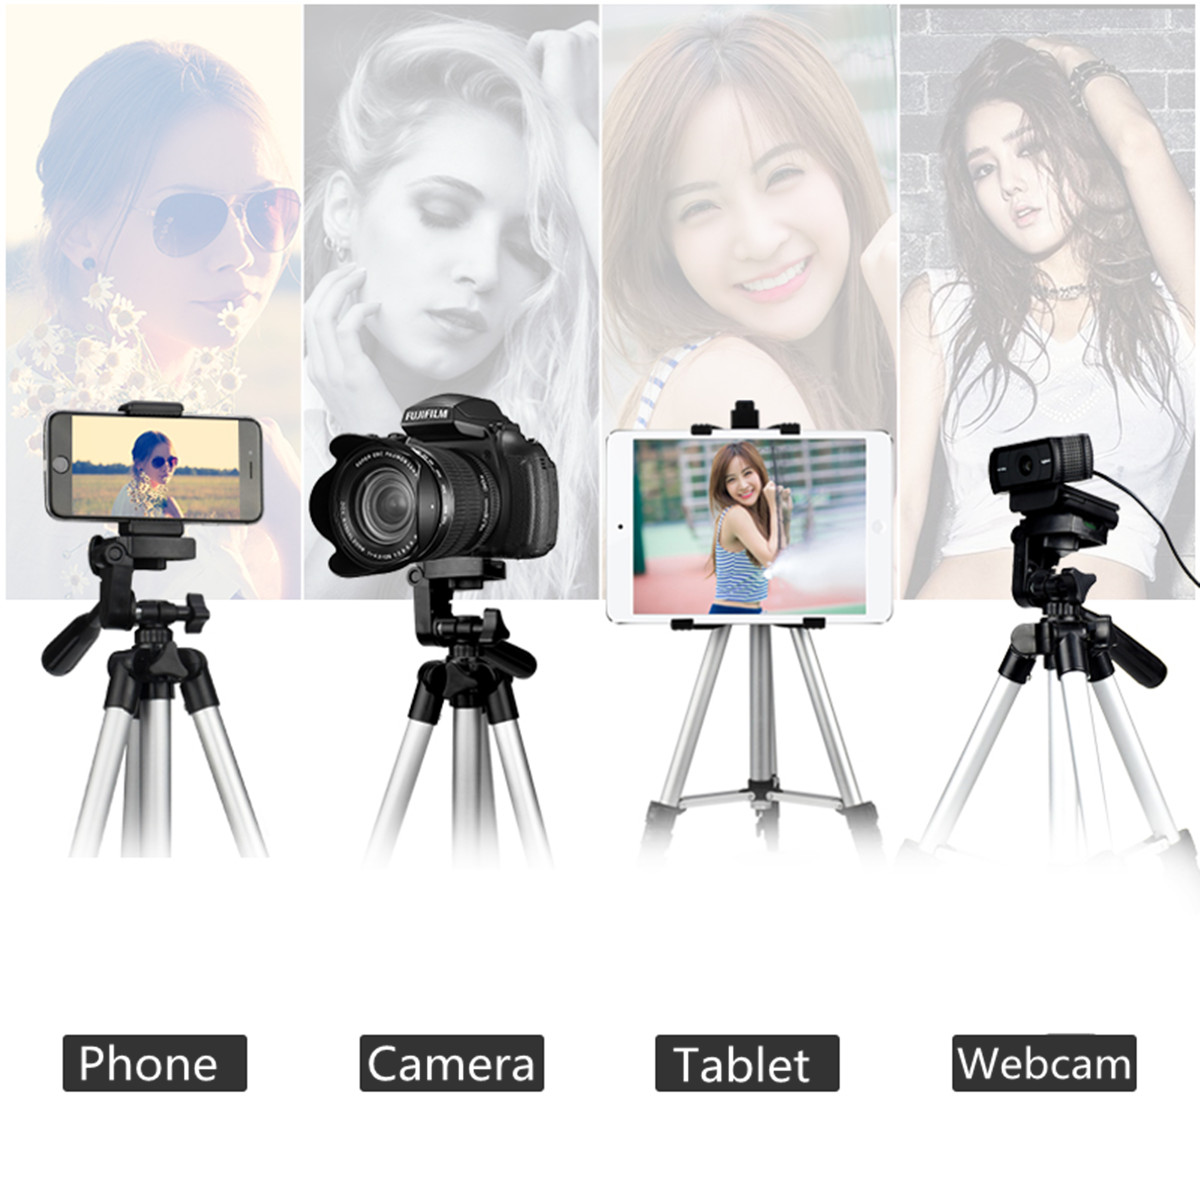 Extendable 36-100cm Universal Adjustable Tripod Stand Mount Holder Clip Camera Phone Holder Bracket For Cell Phone Camera 2